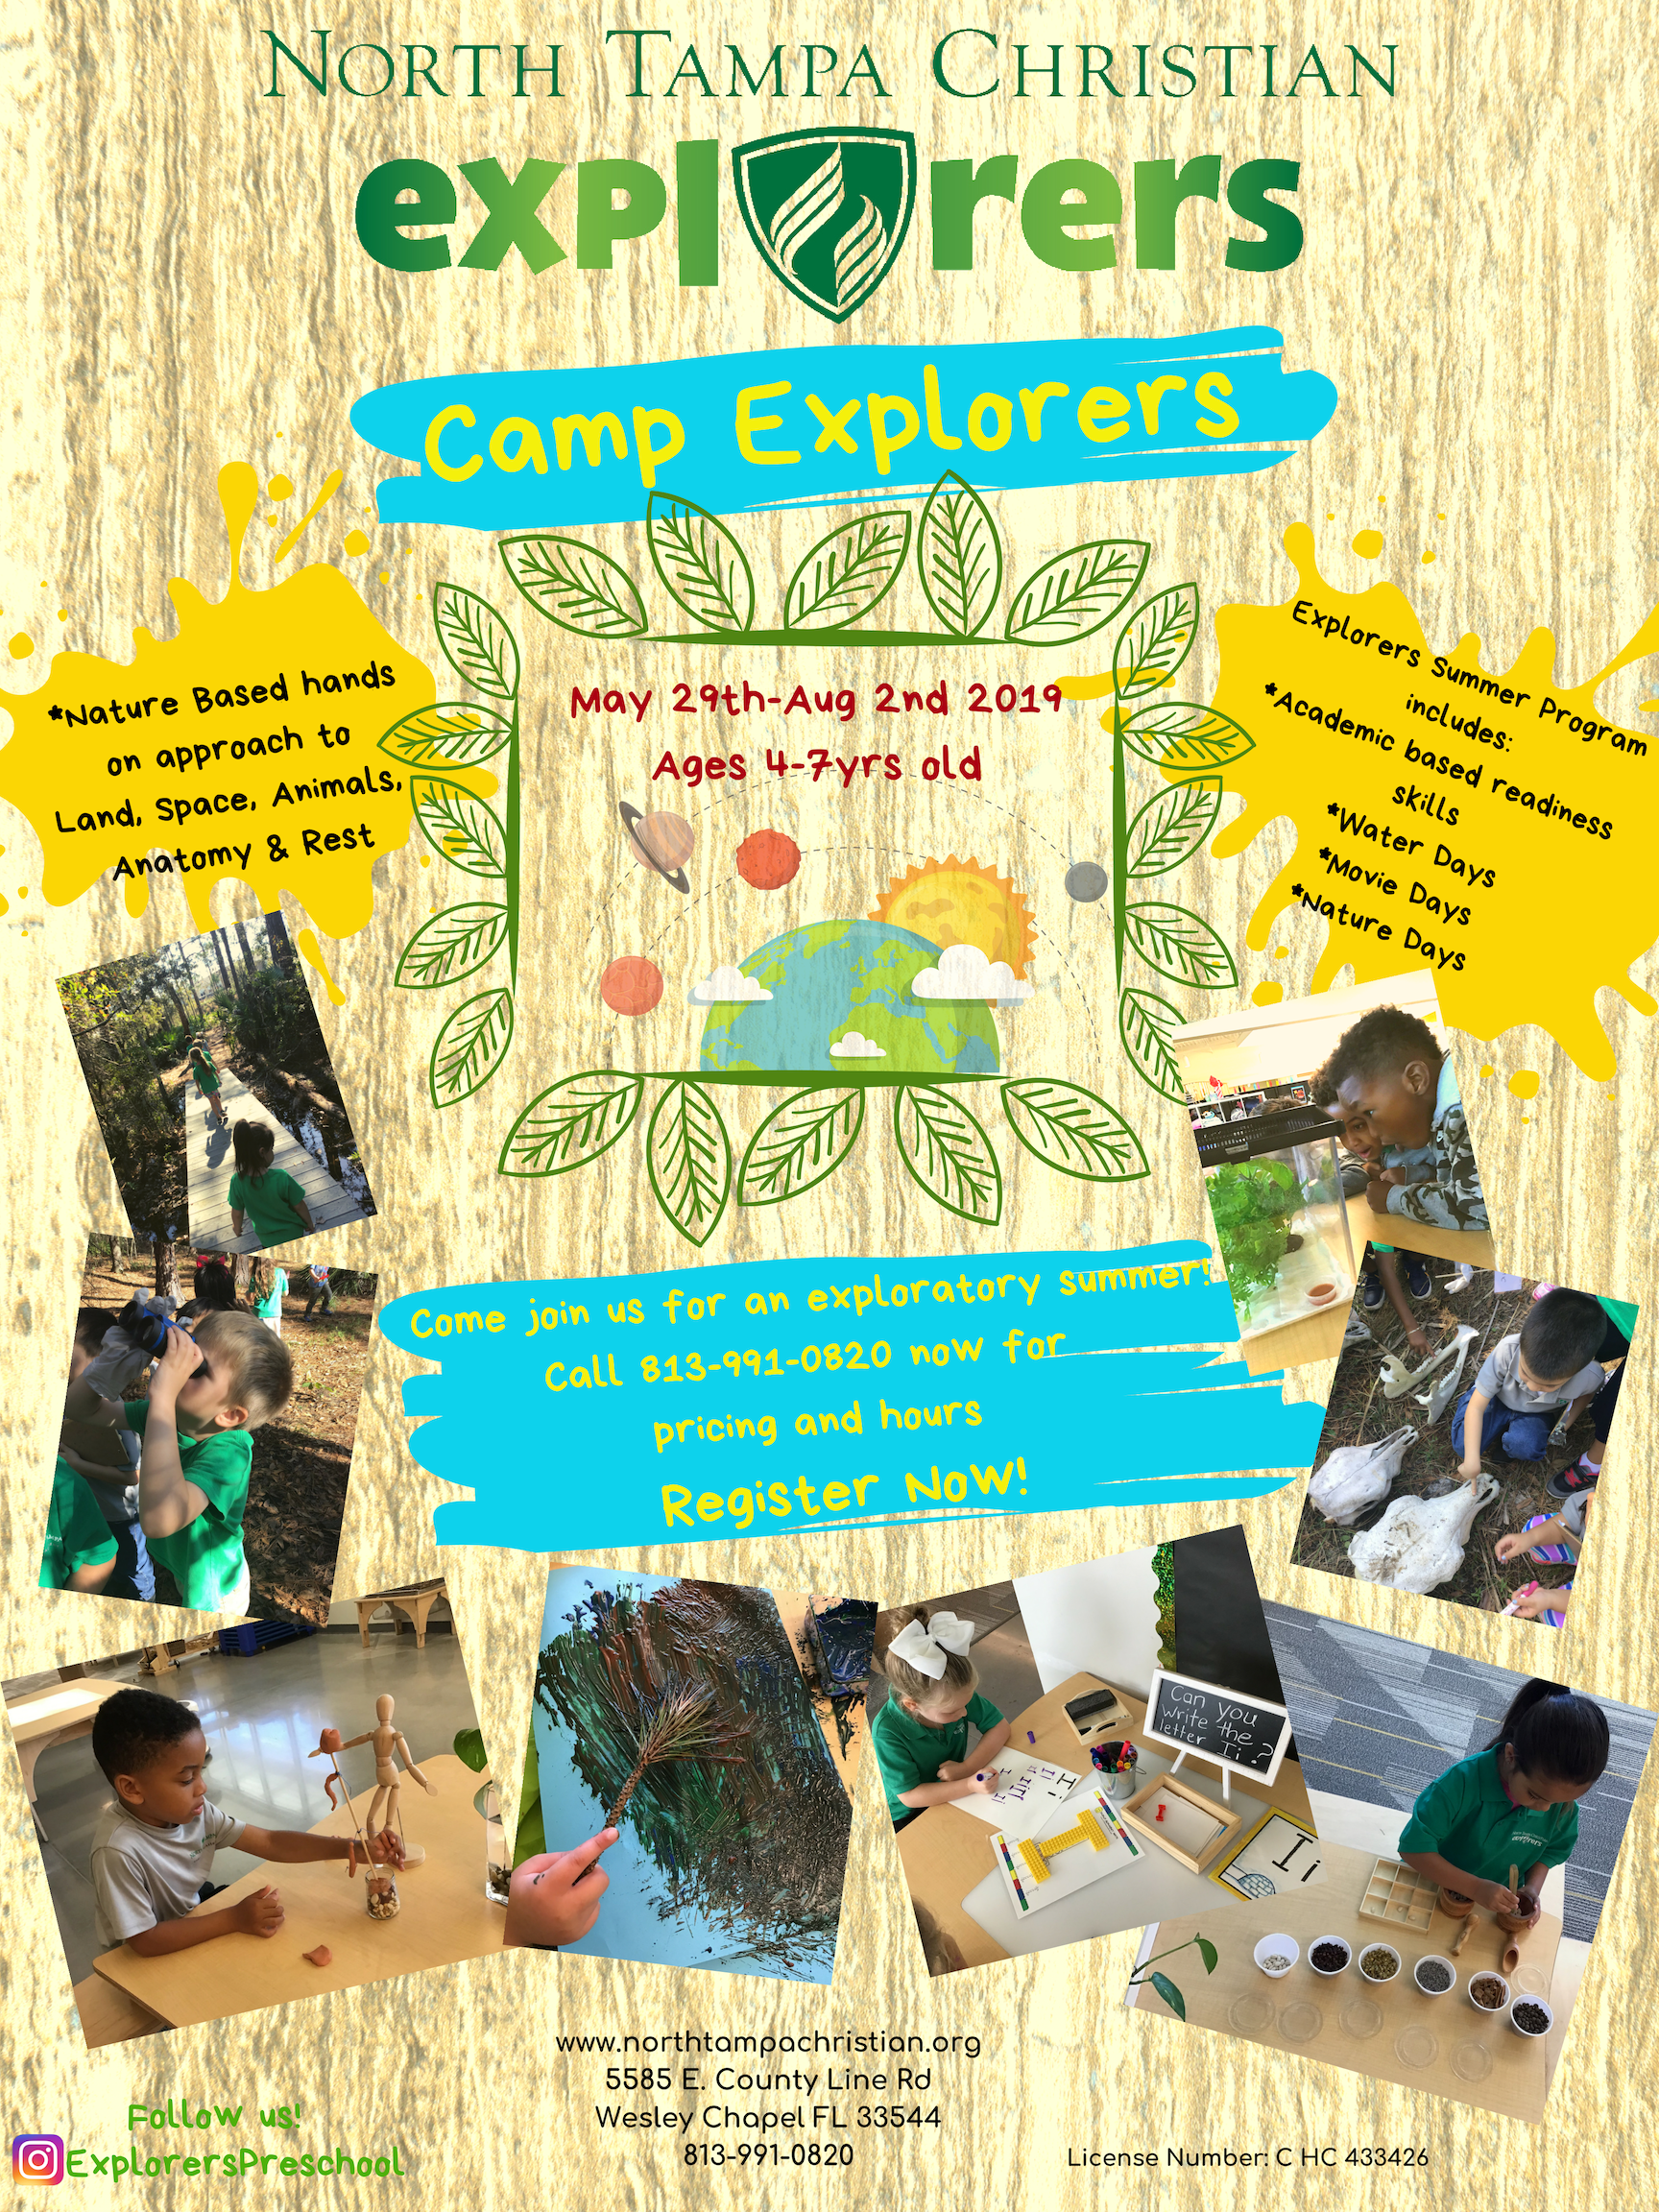 CAMP EXPLORERS  Nature-based Exploratory Camp  Ages 4-7  Call 813-991-0802 or register  HERE   May 29-Aug 2 | $200/week  7:45am-3pm | Extended day available